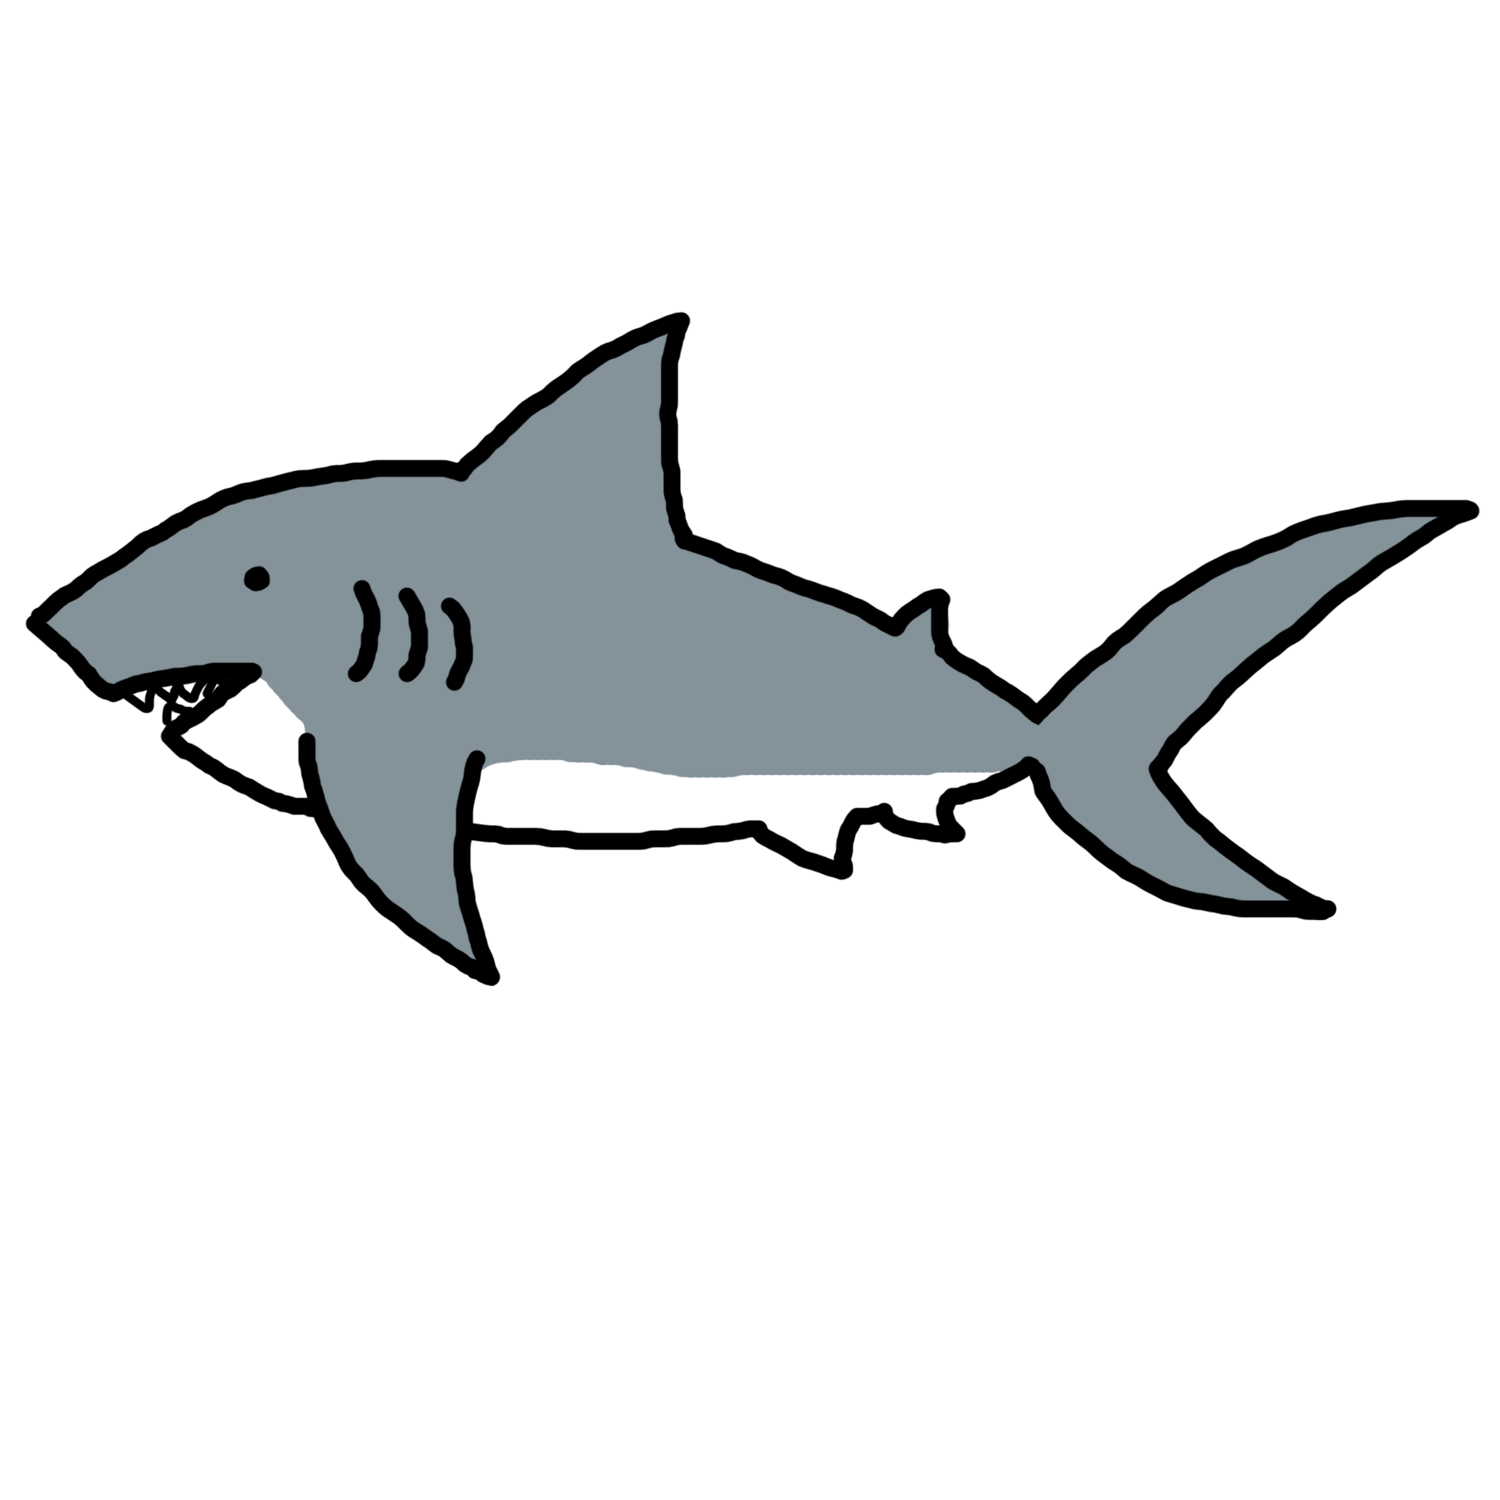 Shark clipart. Children s ministry pinterest